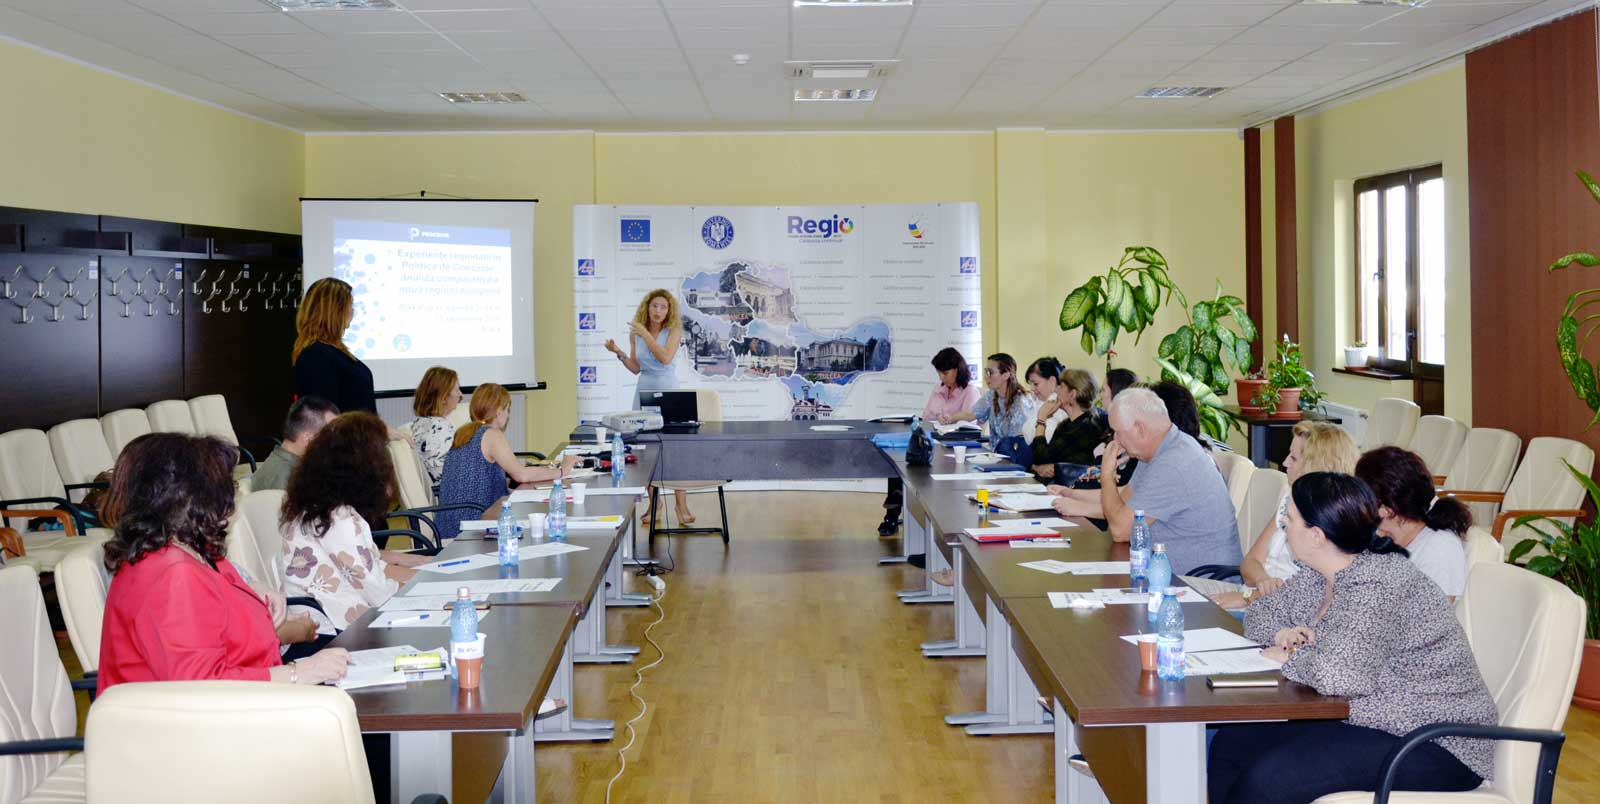 PERCEIVE Workshop in the Romanian Sud Est region: a high awareness of Cohesion Policy and trust in the EU